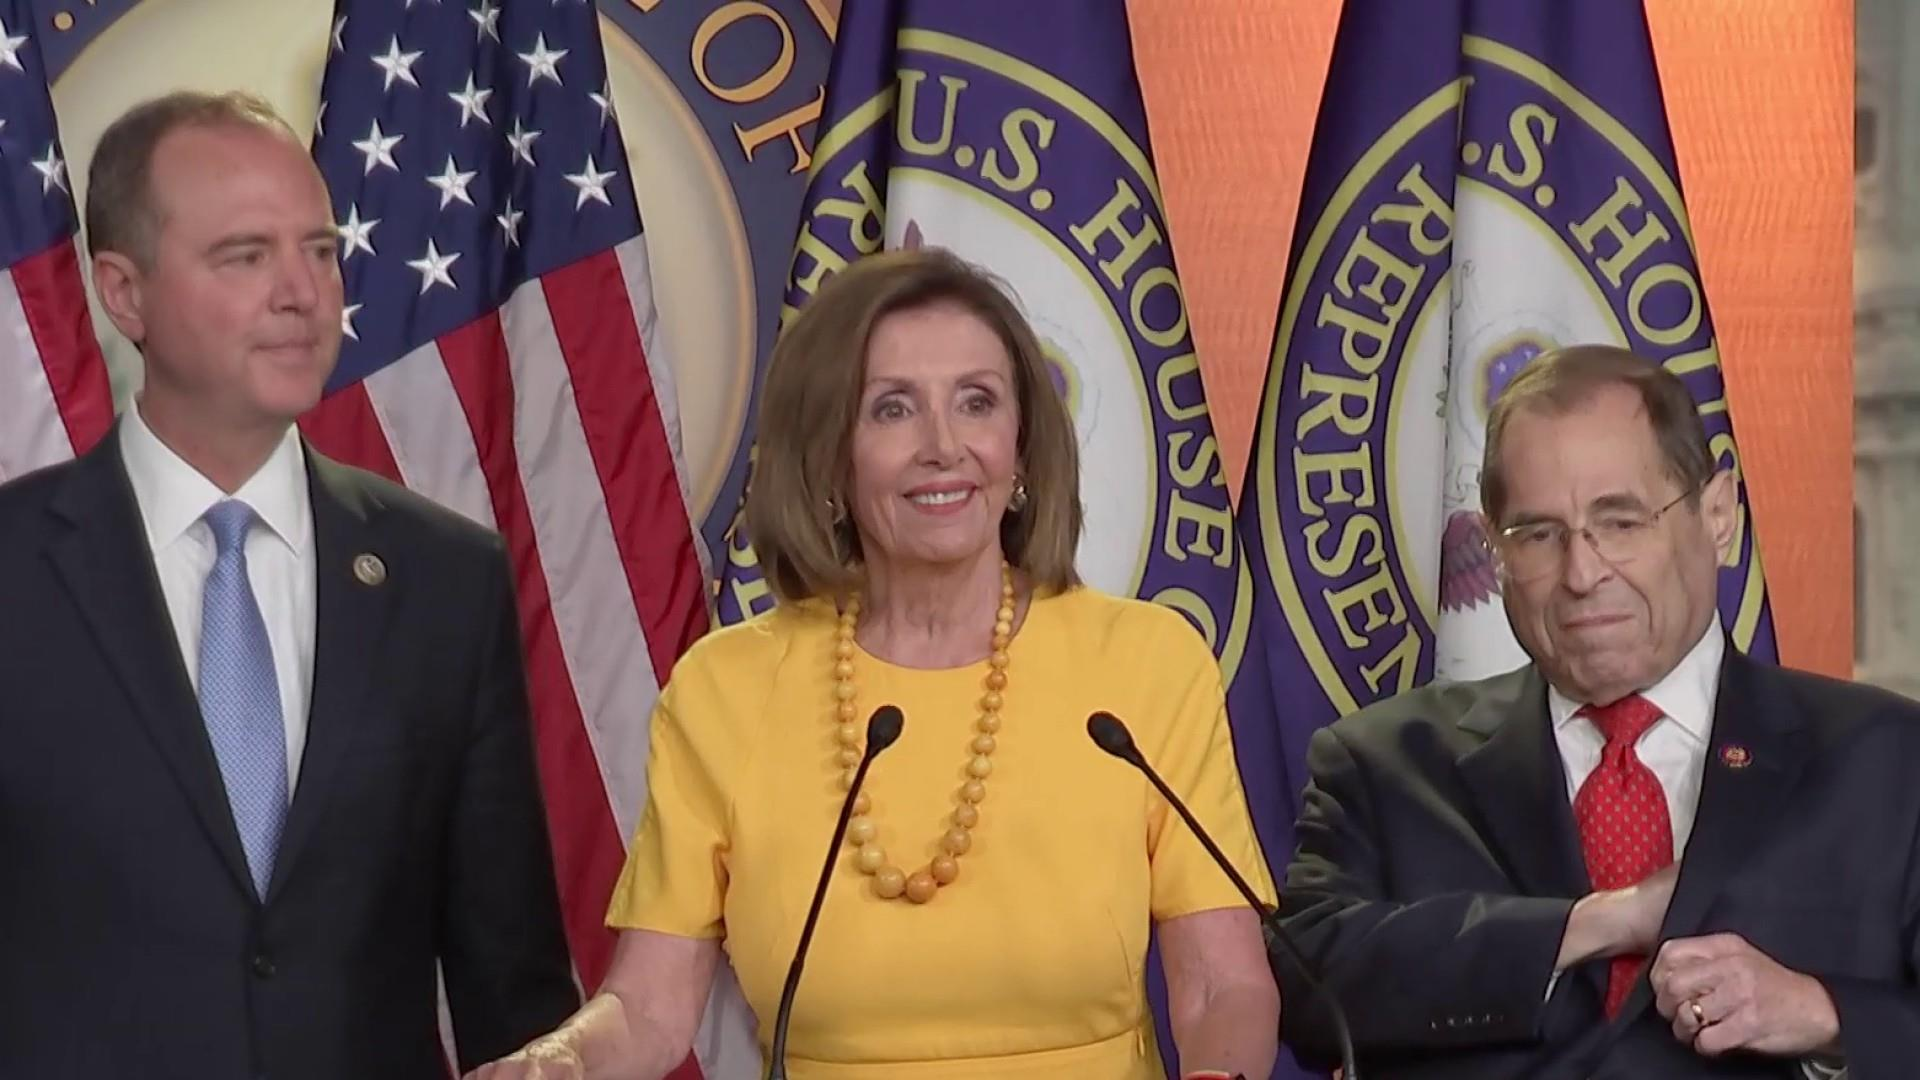 Watch full response from Democratic leadership to Mueller hearing